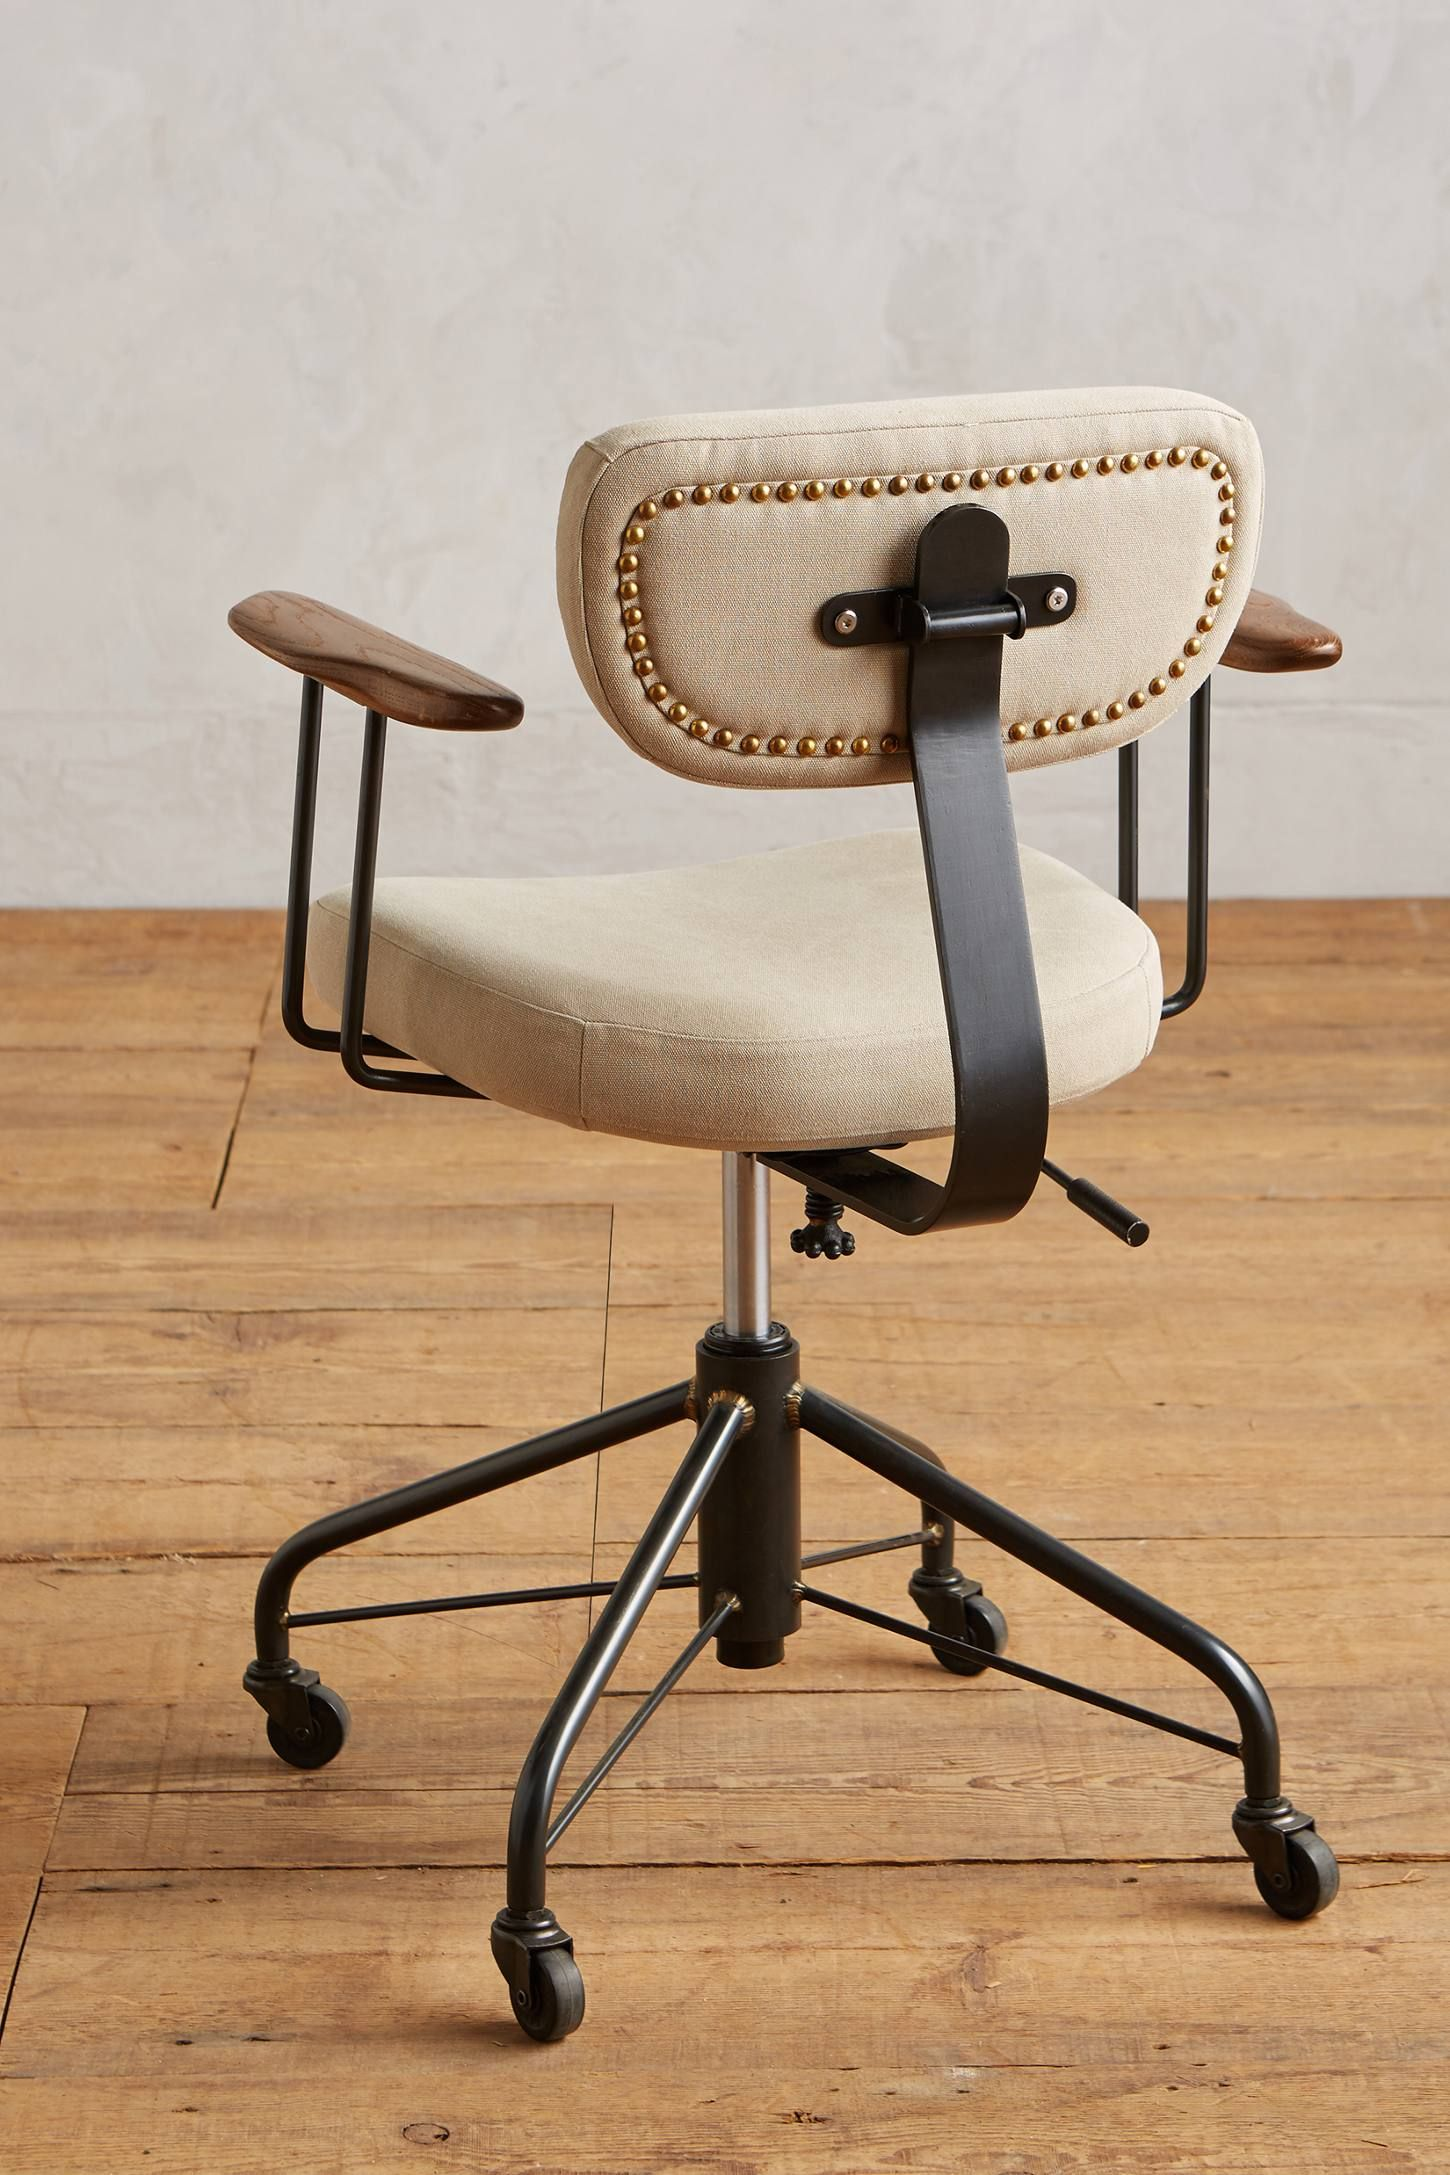 office chair customer reviews old dining room chairs kalmar desk pinterest and shop the more anthropologie at today read discover product details